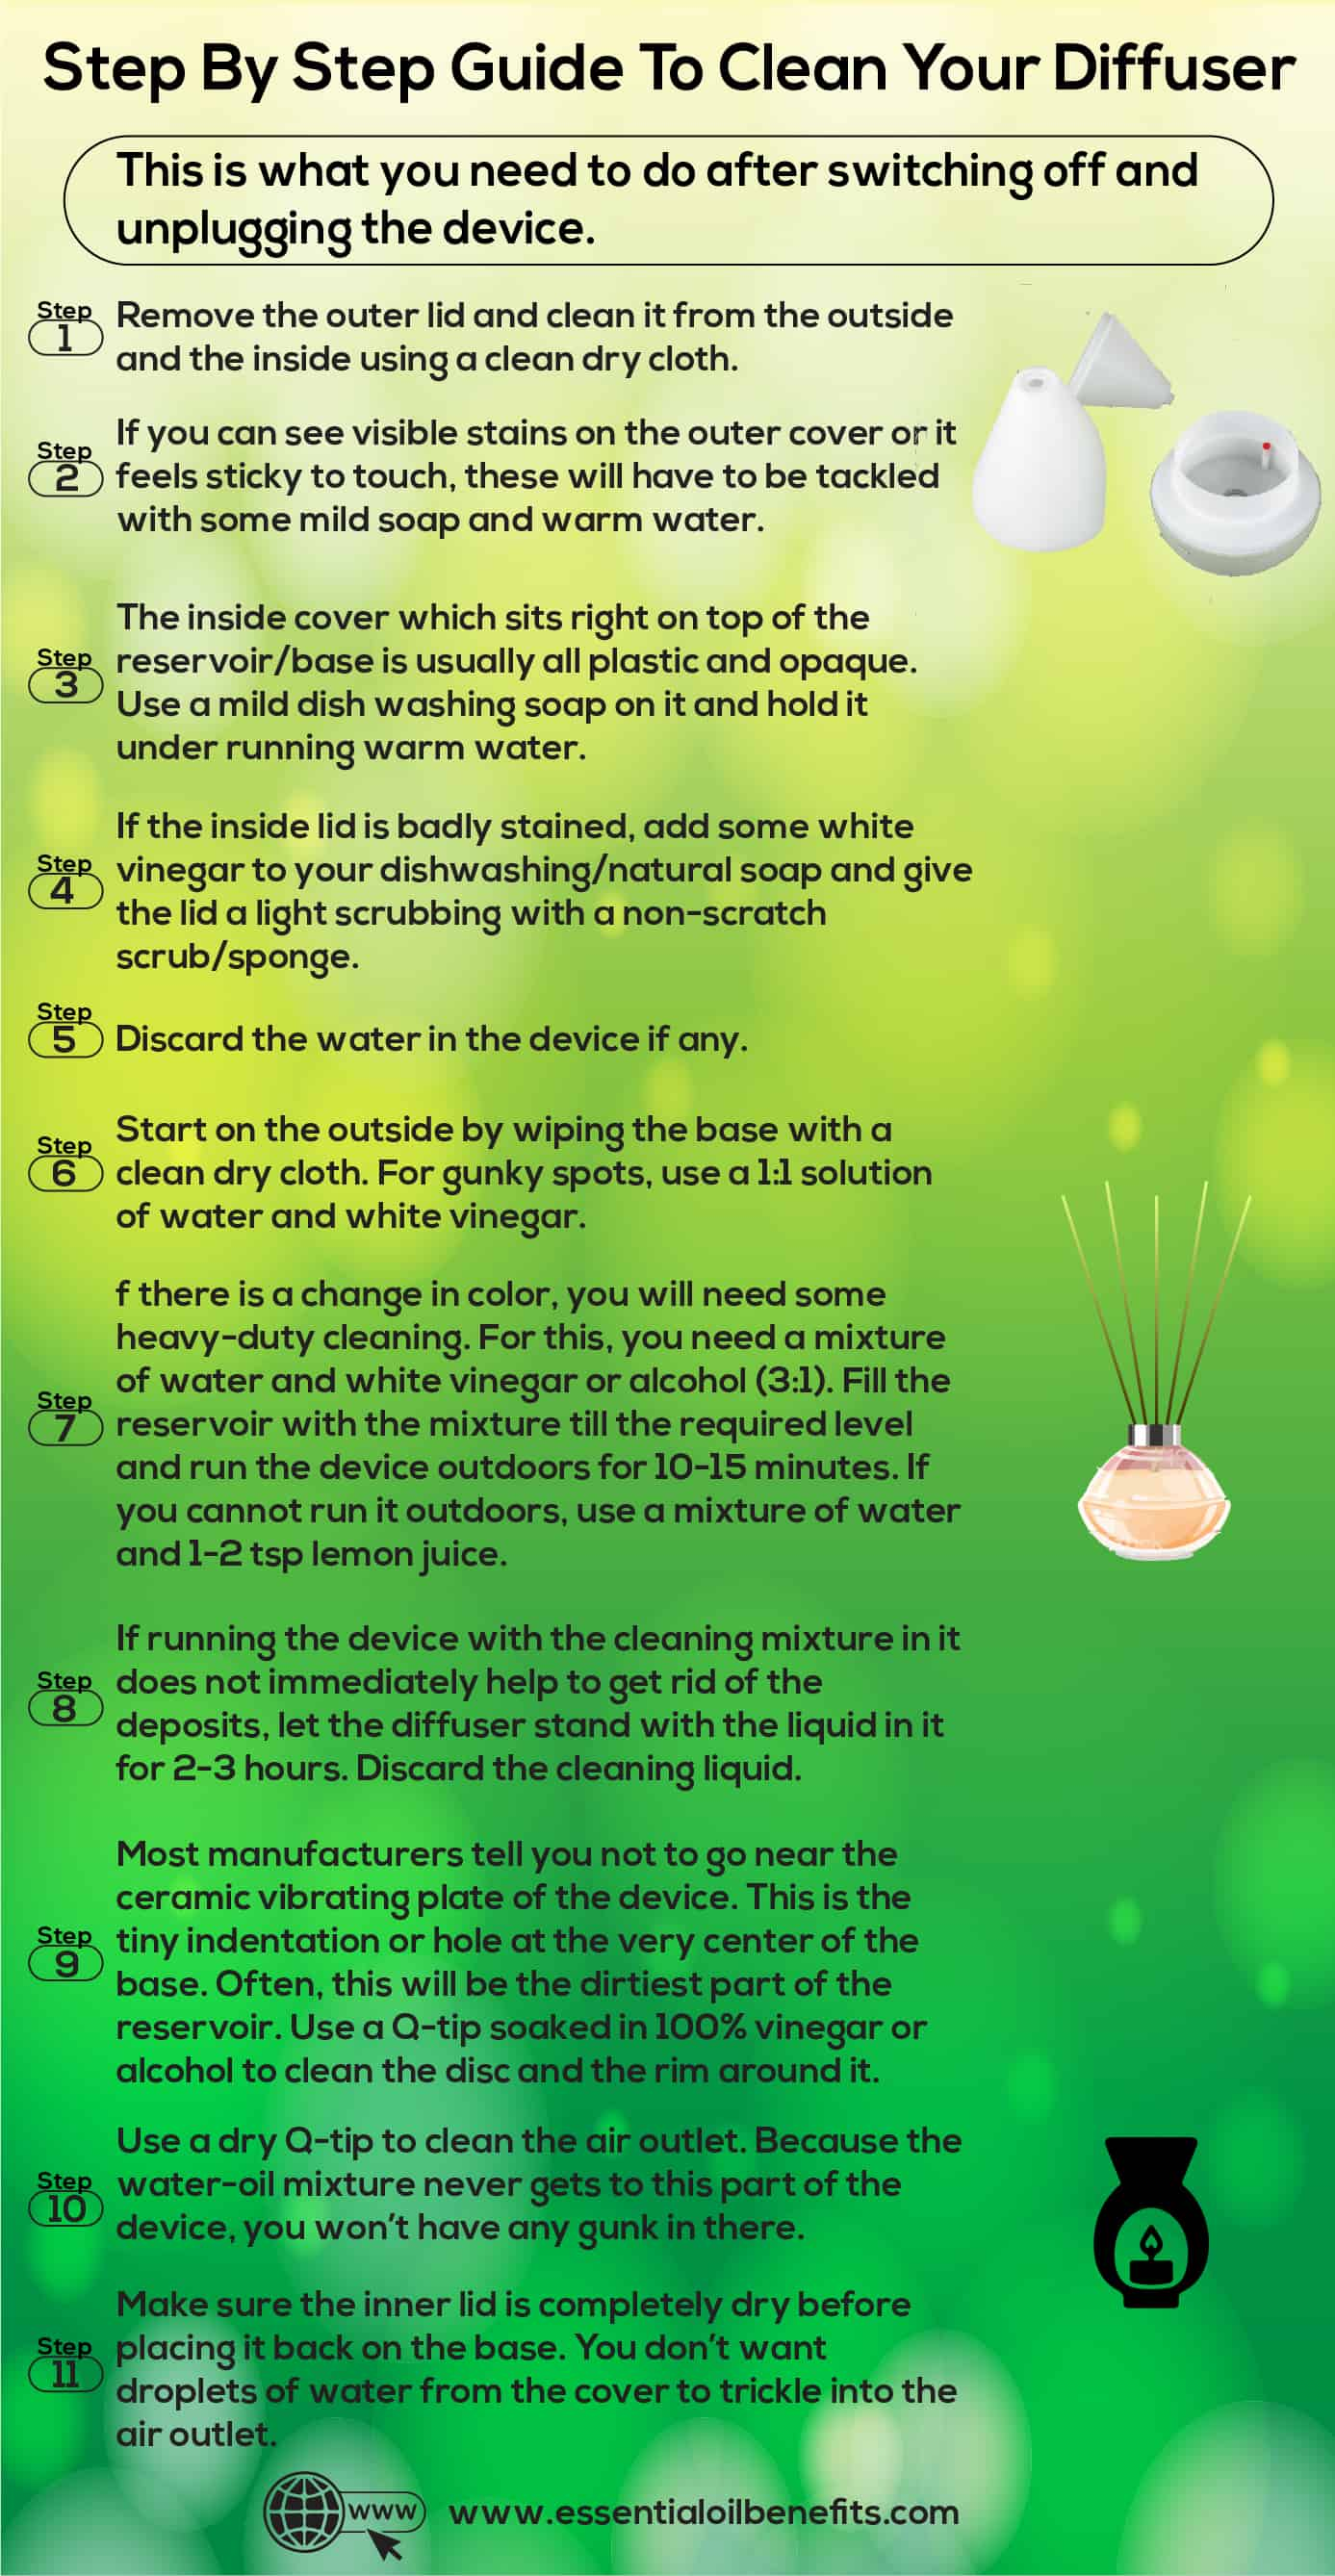 Step By Step Guide To Clean Your Essential Oil Diffuser Essential Oil Benefits